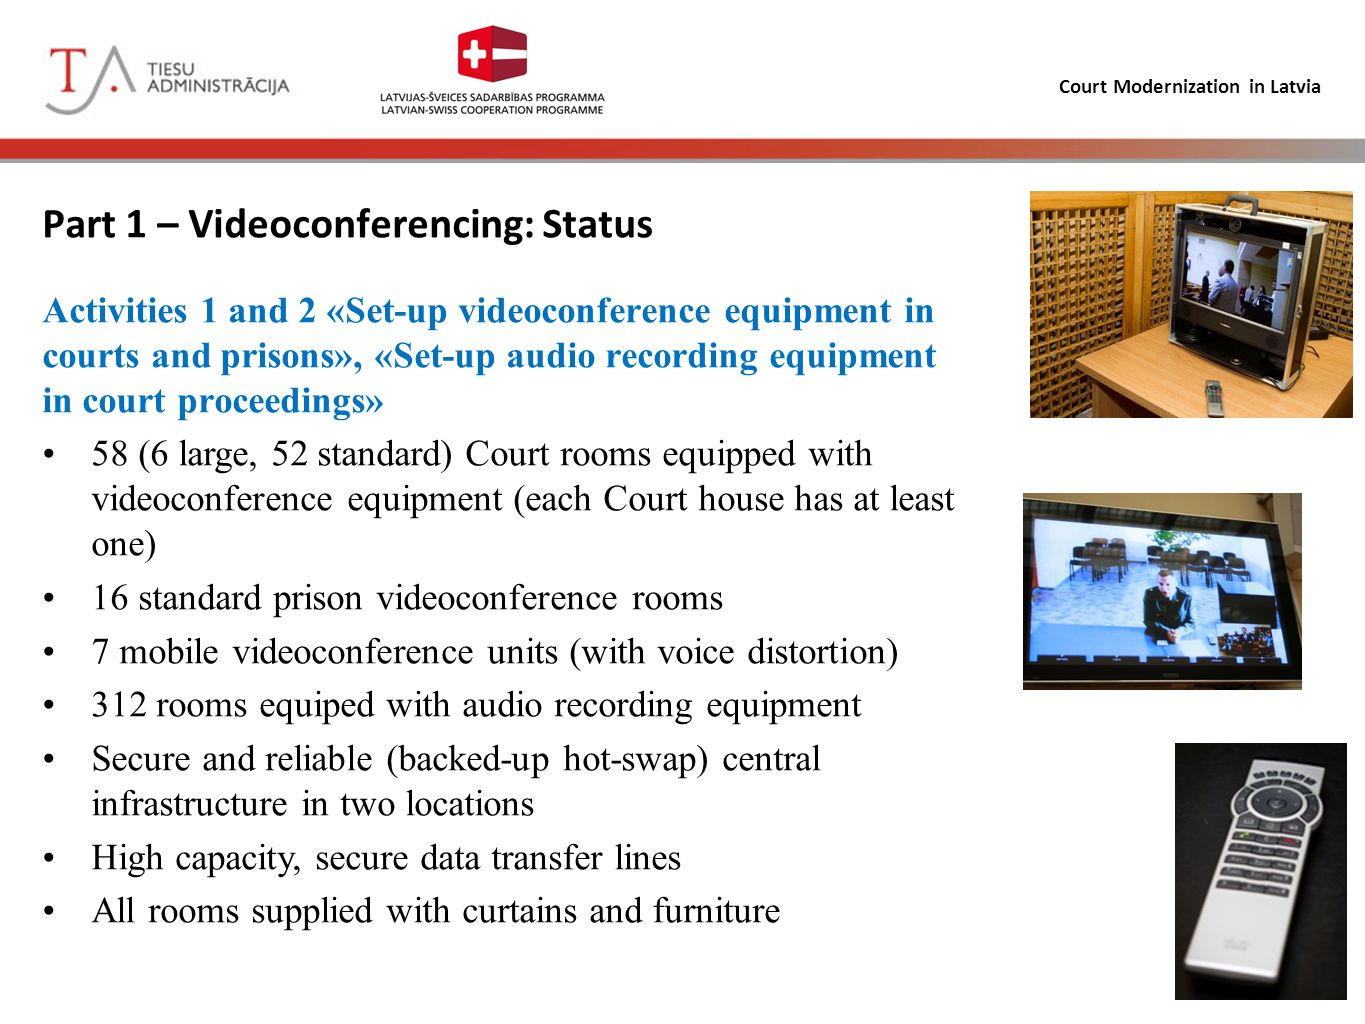 Court Modernization in Latvia Part 1 - Videoconferencing Equipment: Display – Samsung 51' (2 displays for large rooms, 32' for prison facilities) Centrally managed videoconference unit - Cisco TelePresence System Codec C40 with 1 movable videocam (2 videocoms for large rooms) Configurable digital audio processor BSS BLU-100 – with 6 microphones (10 microphones for large court rooms, 5 – for audio recording only, 1 microphone for prison facilities) 7 mobile units Cisco TelePresence System 1700 MXP Central infrastructure in 2 separate locations